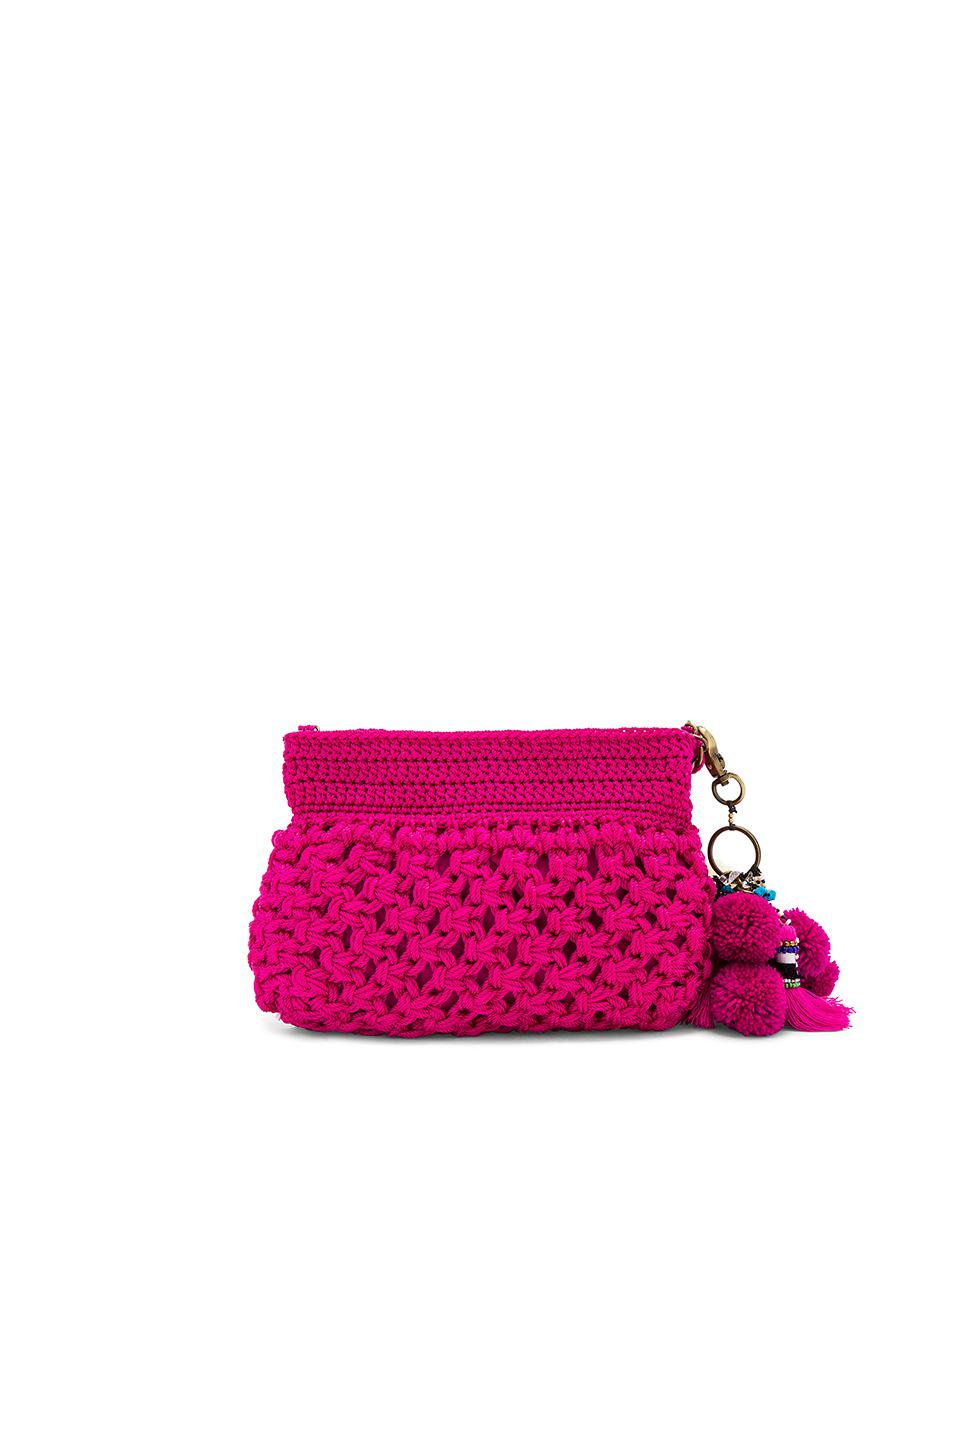 Elliot Mann Canvas Dune Eve Crossbody Bag in Magenta (Pink)